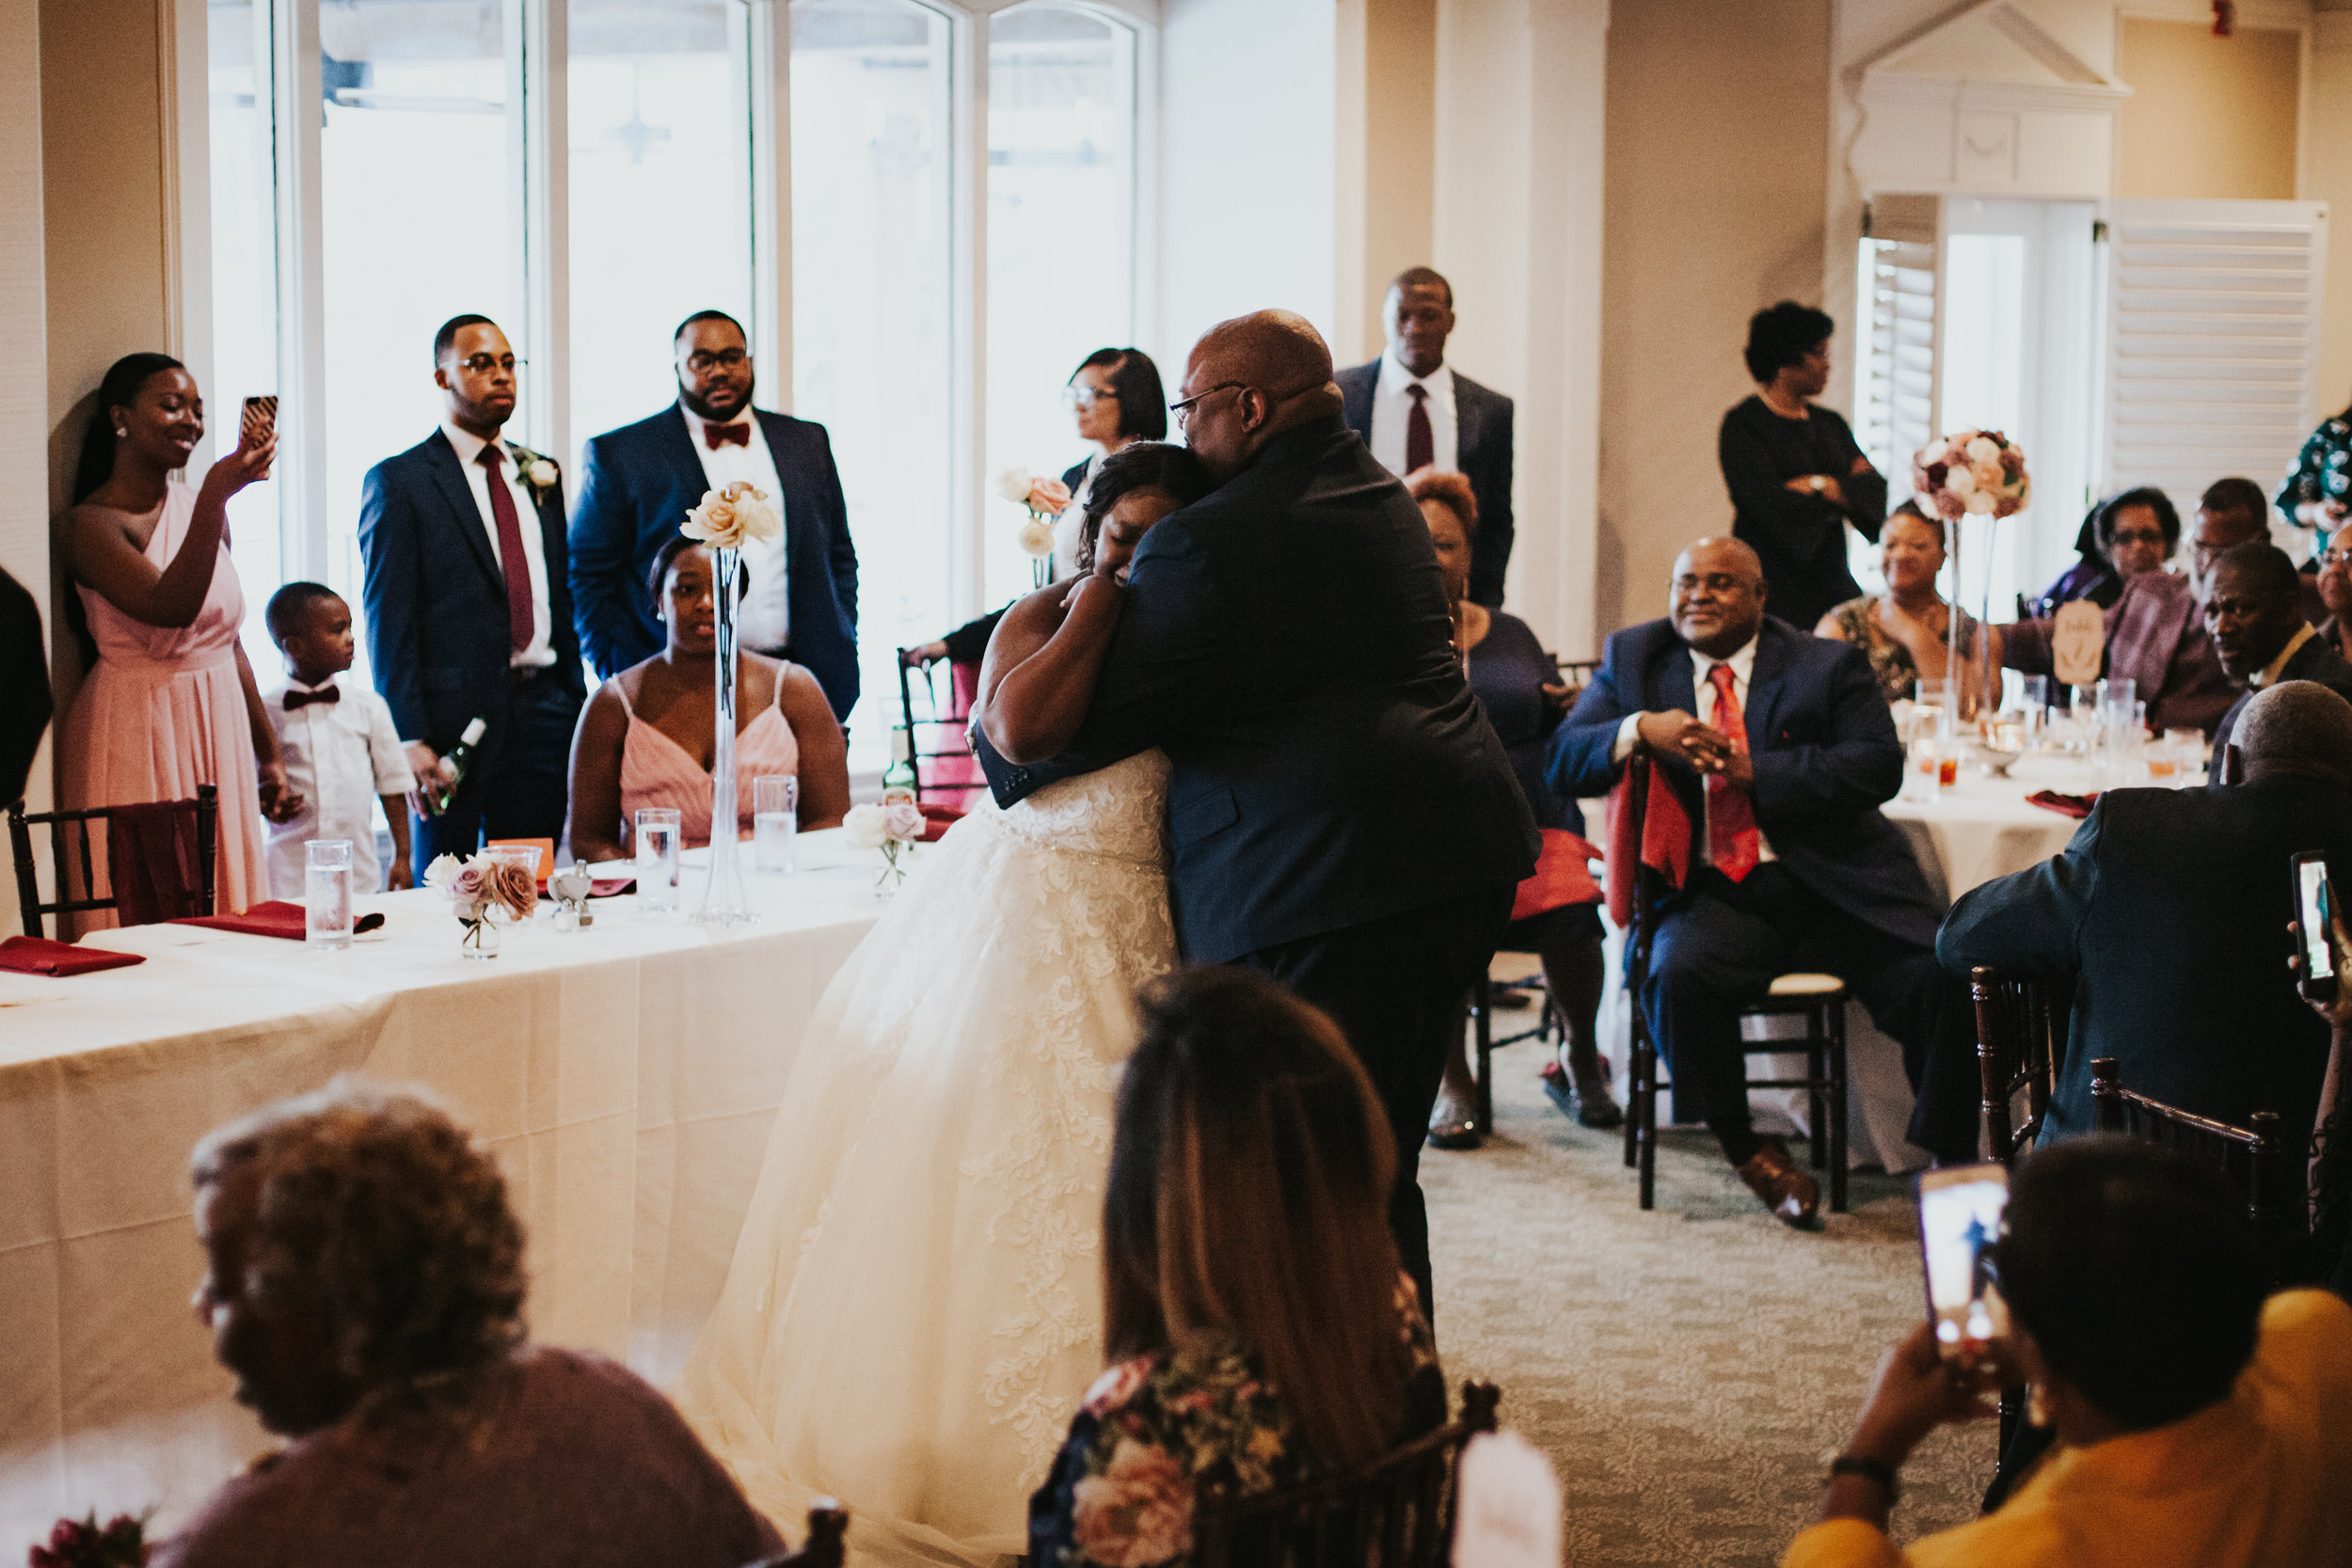 Hope Valley Country Club, Raleigh NC | Fall wedding | Wedding reception photos | Daddy-daughter dance photos | Marina Rey Photography